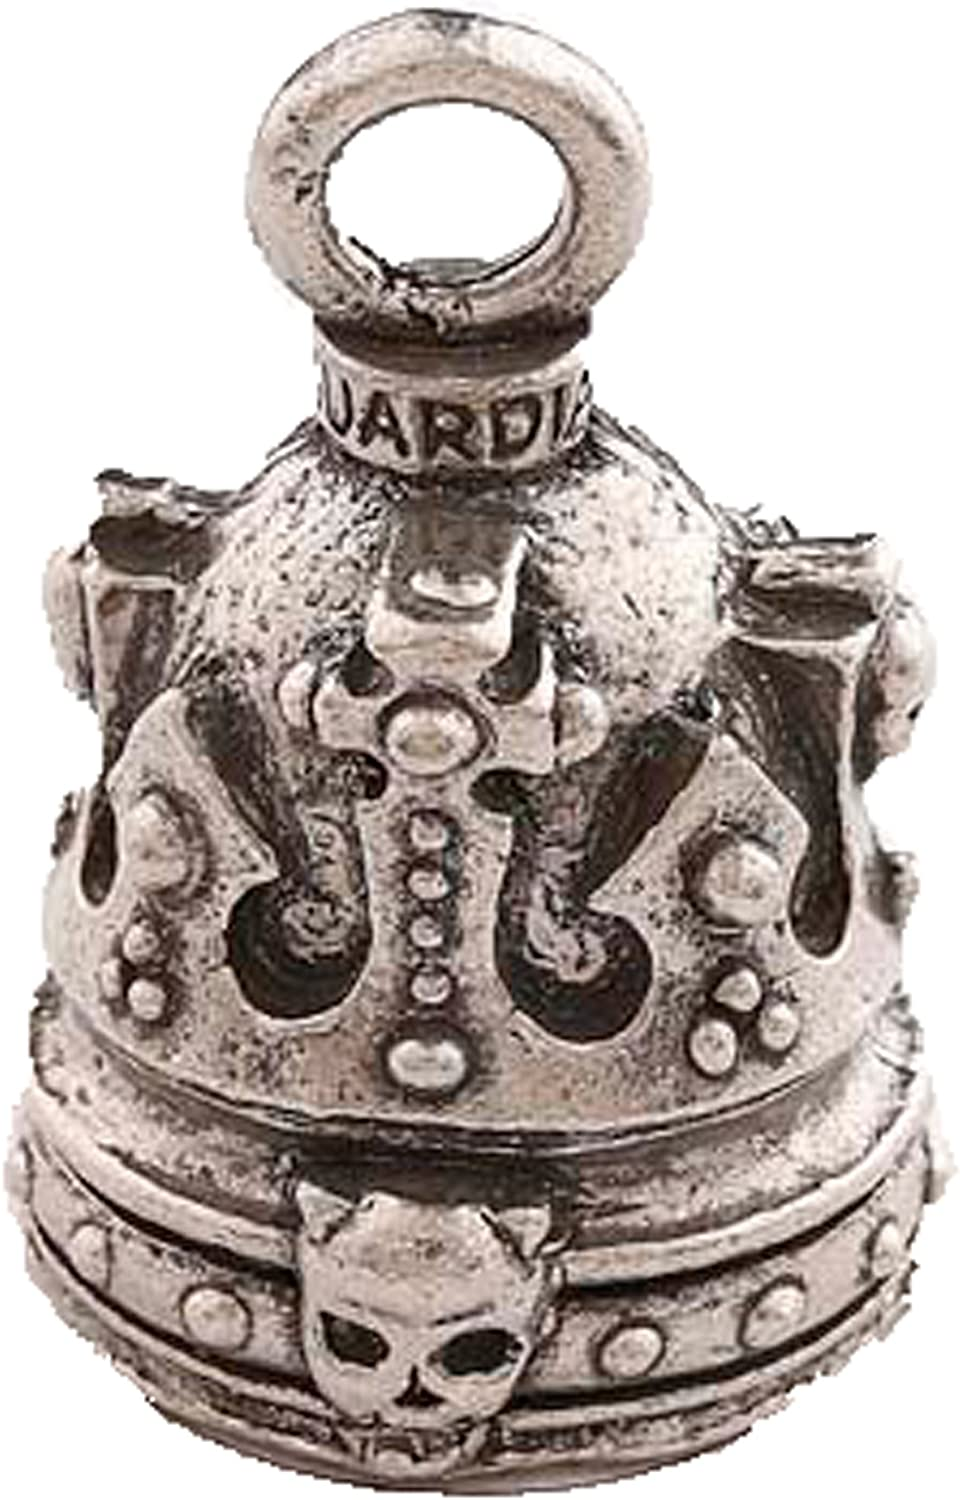 CLADDAGH Guardian Bell Motorcycle Harley Accessory HD Gremlin NEW Riding Bell Key Ring